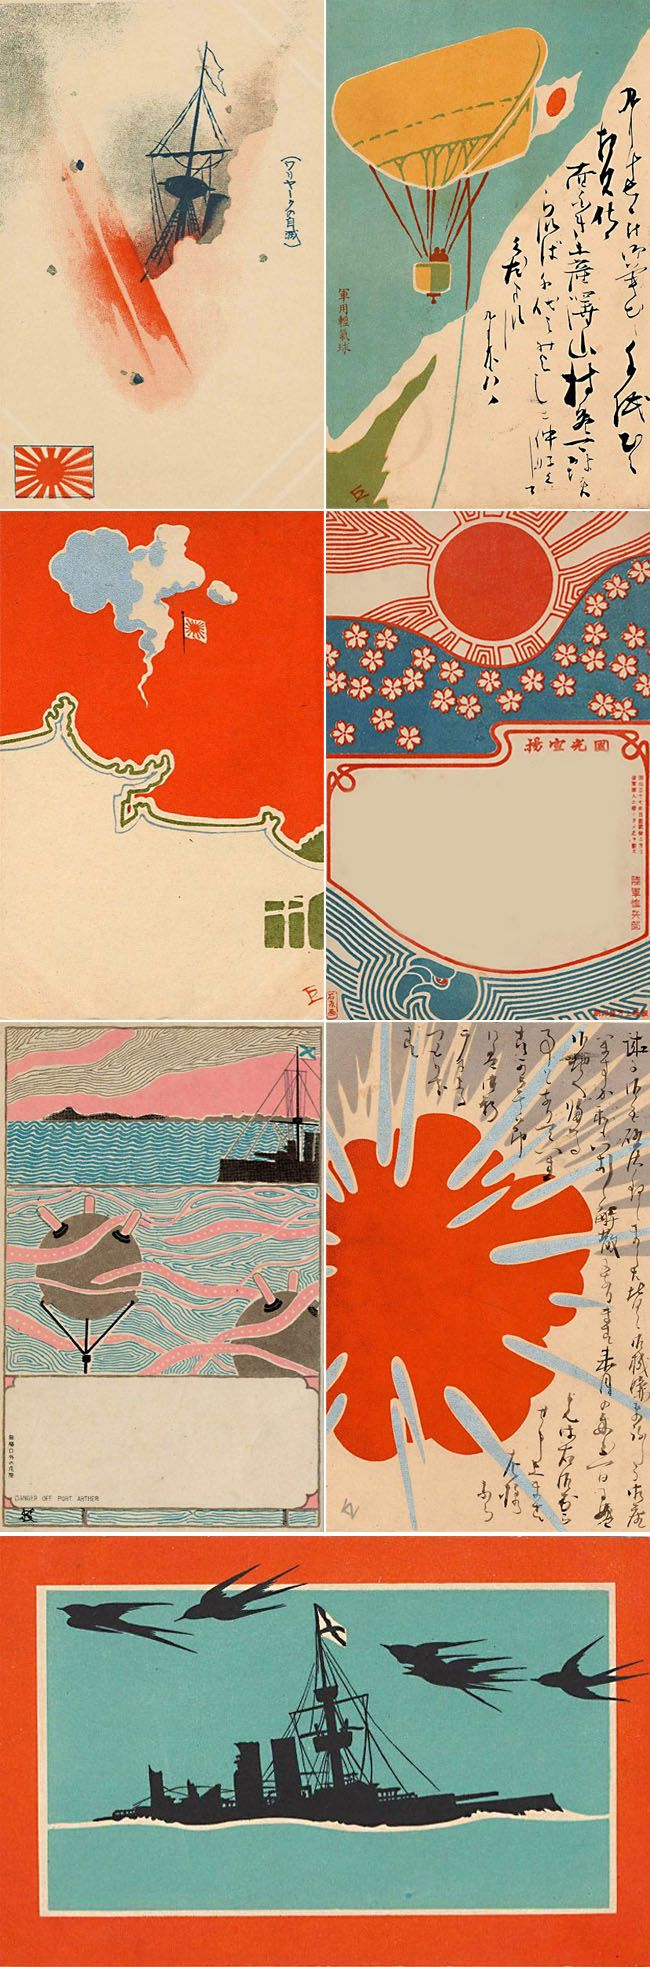 vintage japanese postcards: warships and land mines never looked so dreamy...